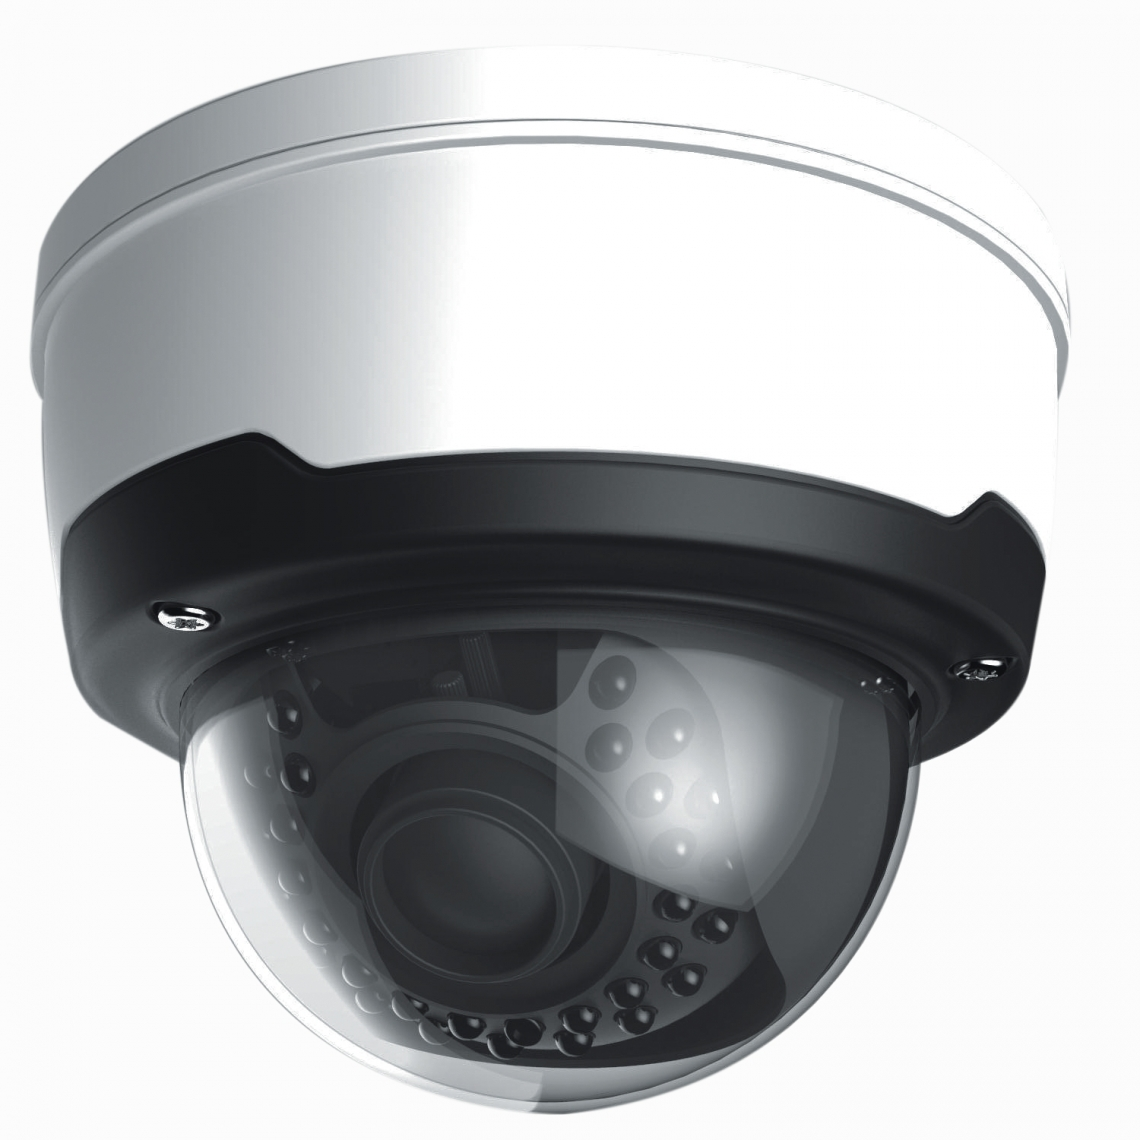 5MP AHD DOME VARIFOCAL LENS - TVT73VFAHD/5